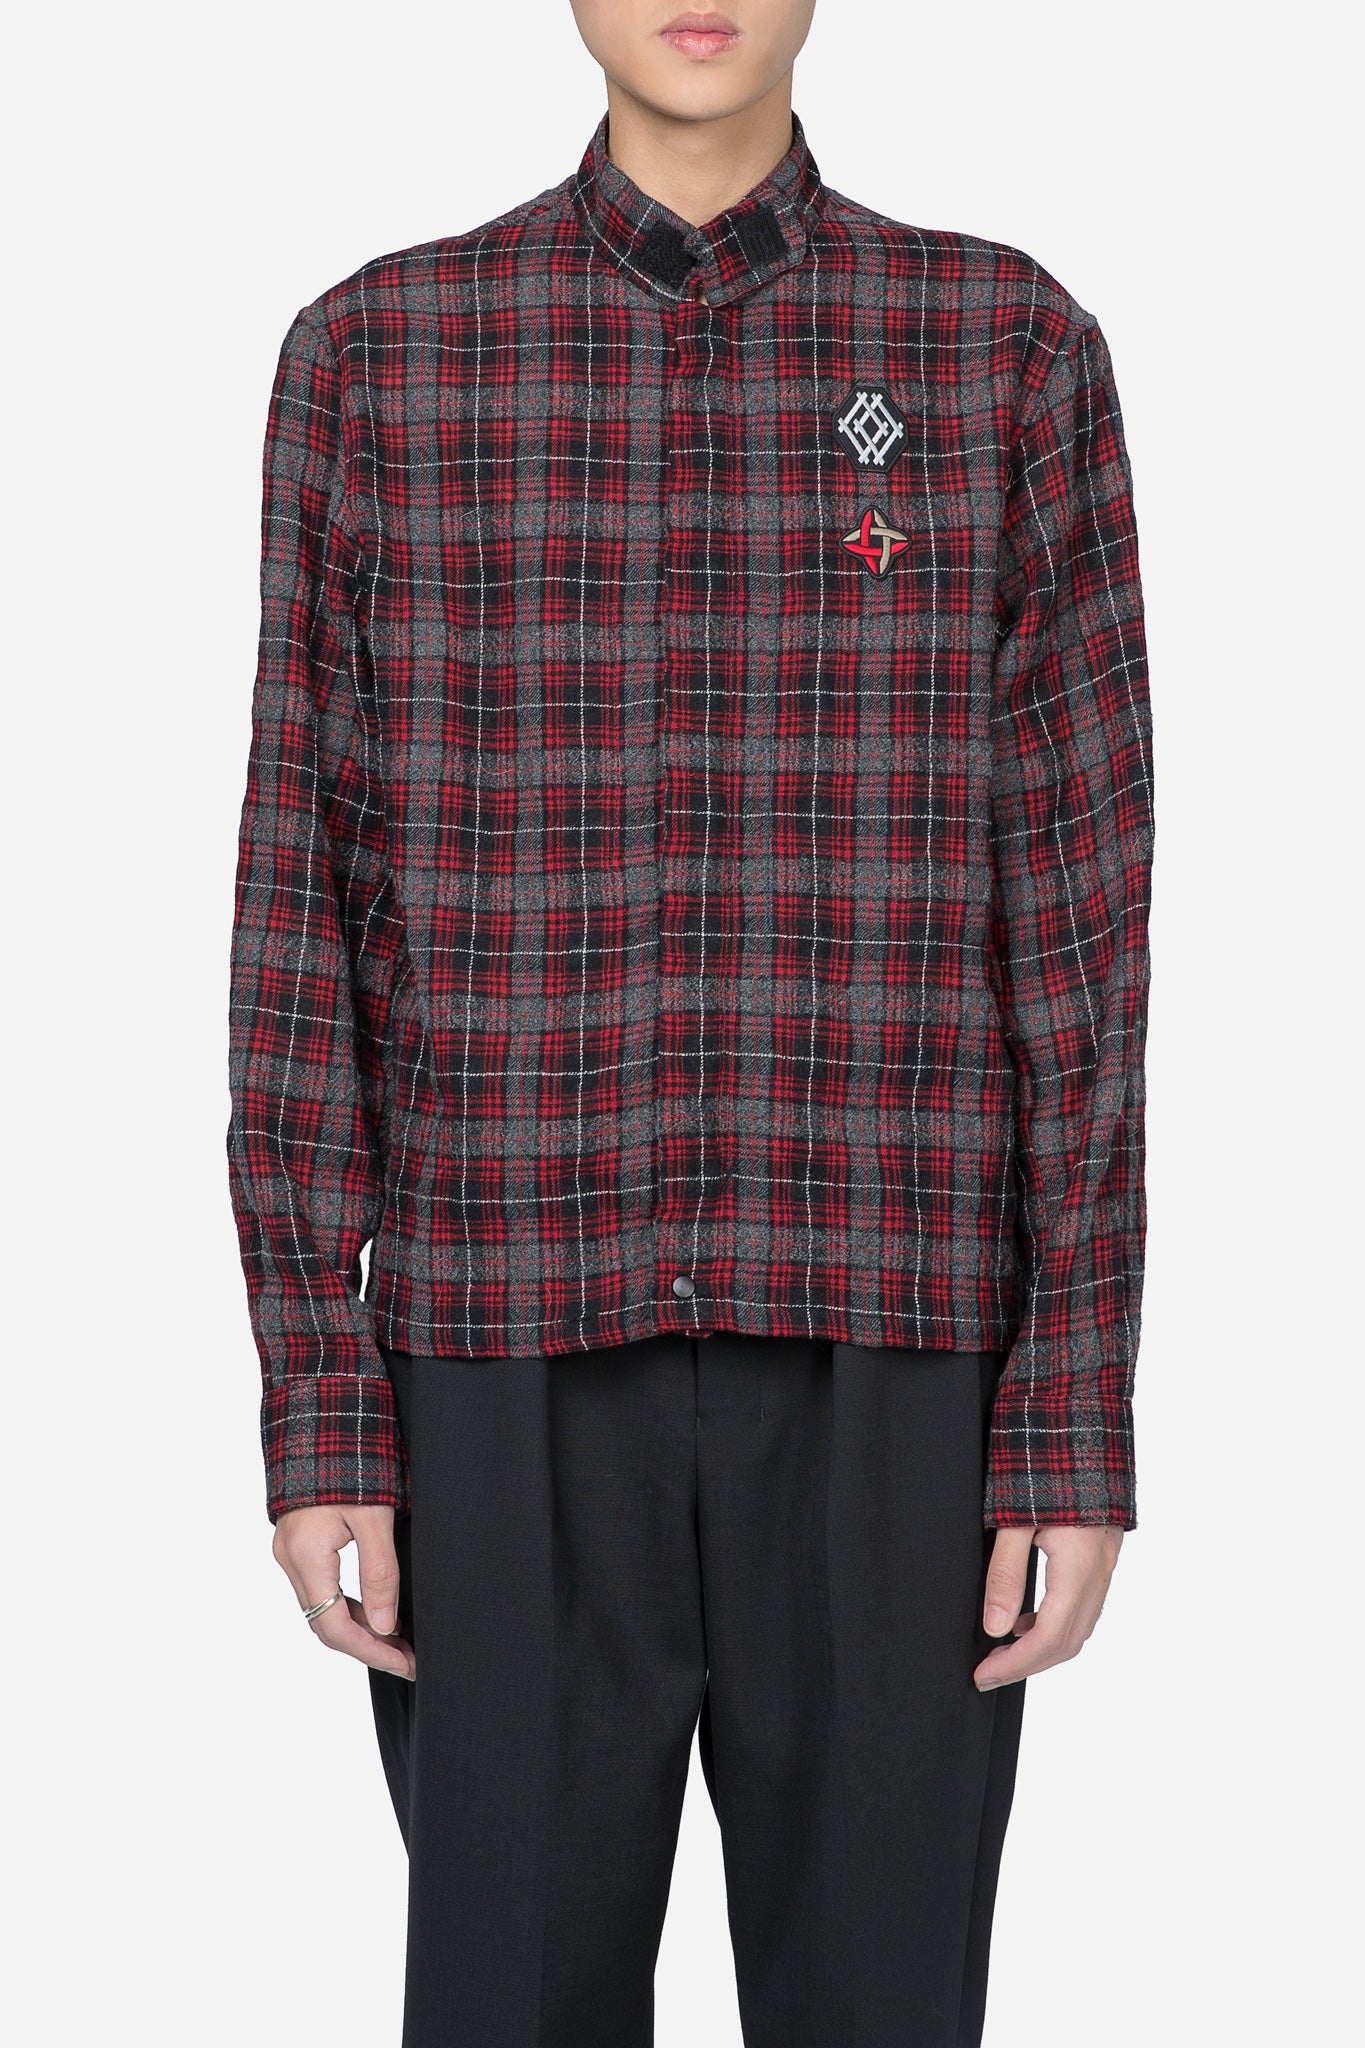 Patch Zip Jacket Shirt Red